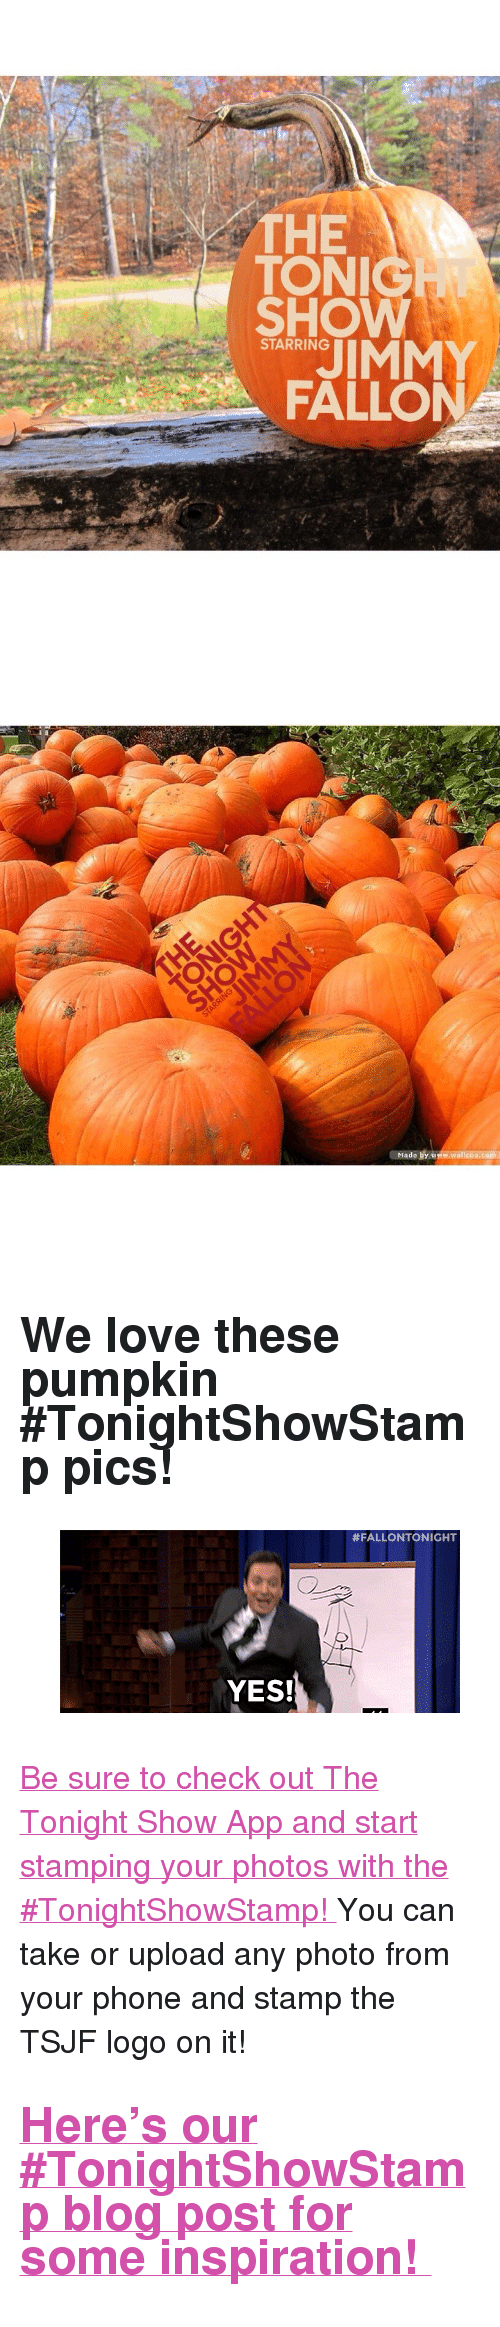 "The Tonight Show Starring Jimmy Fallon: THE  TON  SHOW  STARRING  FALLON   Made by www.wallcoo.com <h2>We love these pumpkin #TonightShowStamp pics! </h2><figure data-orig-width=""400"" data-orig-height=""183"" class=""tmblr-full""><img src=""https://78.media.tumblr.com/ee9f9514ebdea8536c9fa2d806bb67d3/tumblr_inline_nw63l4WHo51qgt12i_500.gif"" alt=""image"" data-orig-width=""400"" data-orig-height=""183""/></figure><p><a href=""http://www.nbc.com/the-tonight-show/blog/download-the-tonight-show-starring-jimmy-fallon-app/1086"" target=""_blank"">Be sure to check out The Tonight Show App and start stamping your photos with the #TonightShowStamp! </a>You can take or upload any photo from your phone and stamp the TSJF logo on it!</p><h2><a href=""http://www.nbc.com/the-tonight-show/blog/tonightshowstamp/128921"" target=""_blank"">Here's our #TonightShowStamp blog post for some inspiration! </a></h2>"